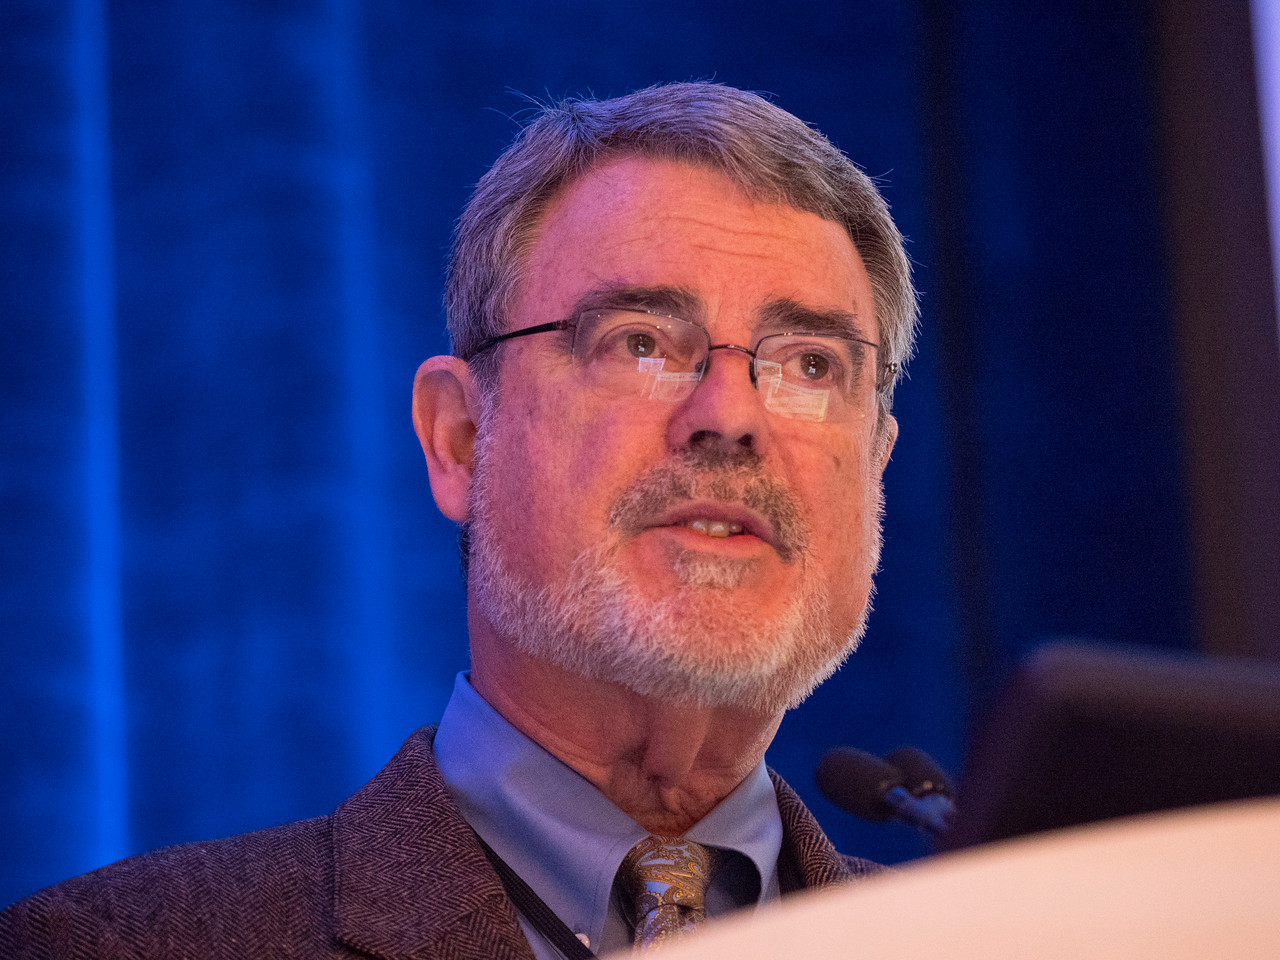 Dr. Fitzhugh Mullan delivers a keynote lecture - Welcome & Keynote Lecture: The History of Cancer Survivorship